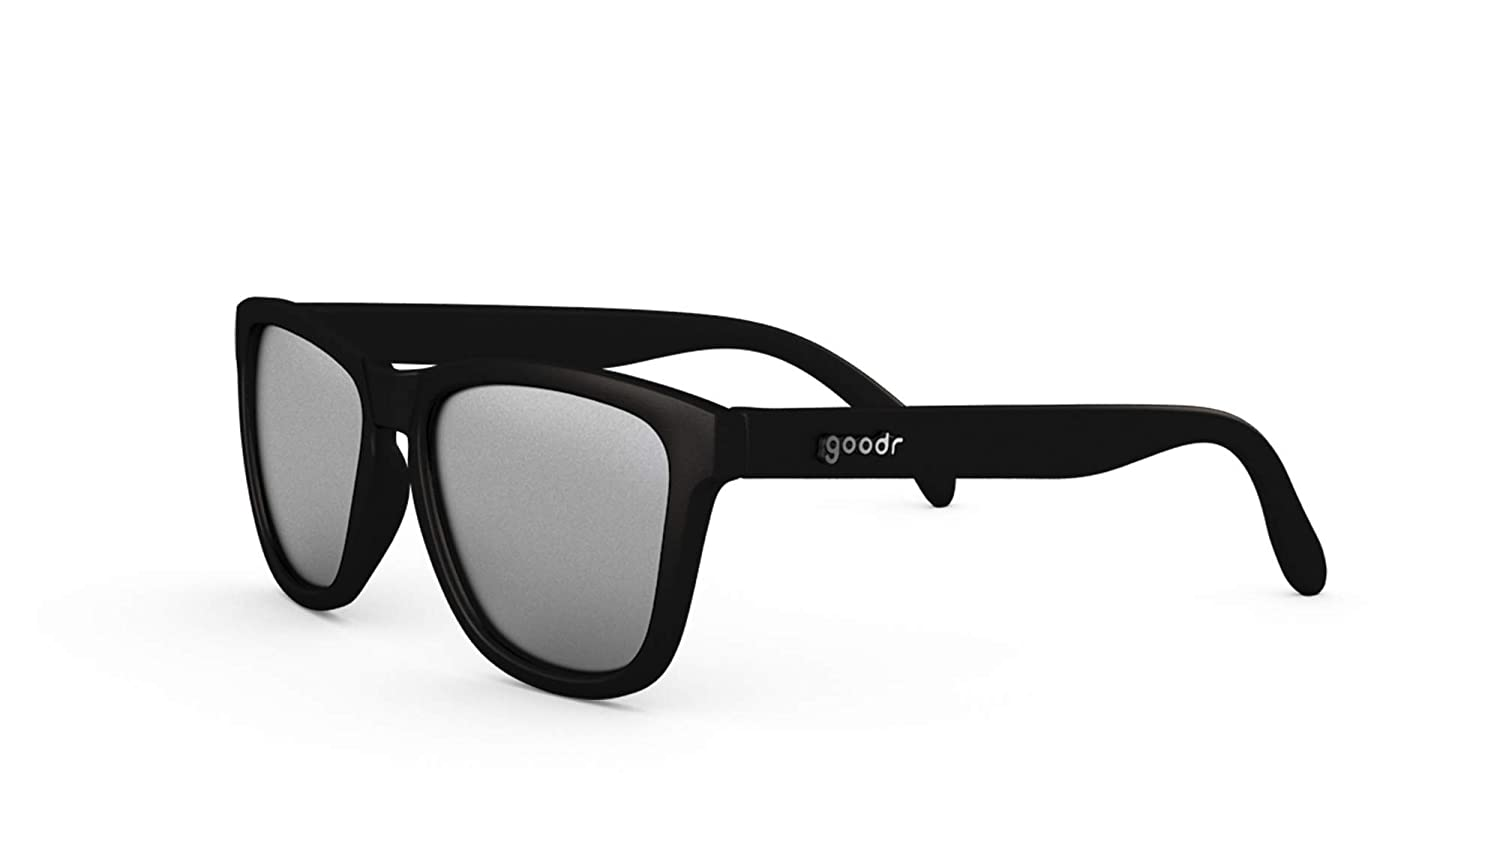 a02f5d425d3e goodr OG Sunglasses - (no slip no bounce all polarized): Amazon.in:  Clothing & Accessories